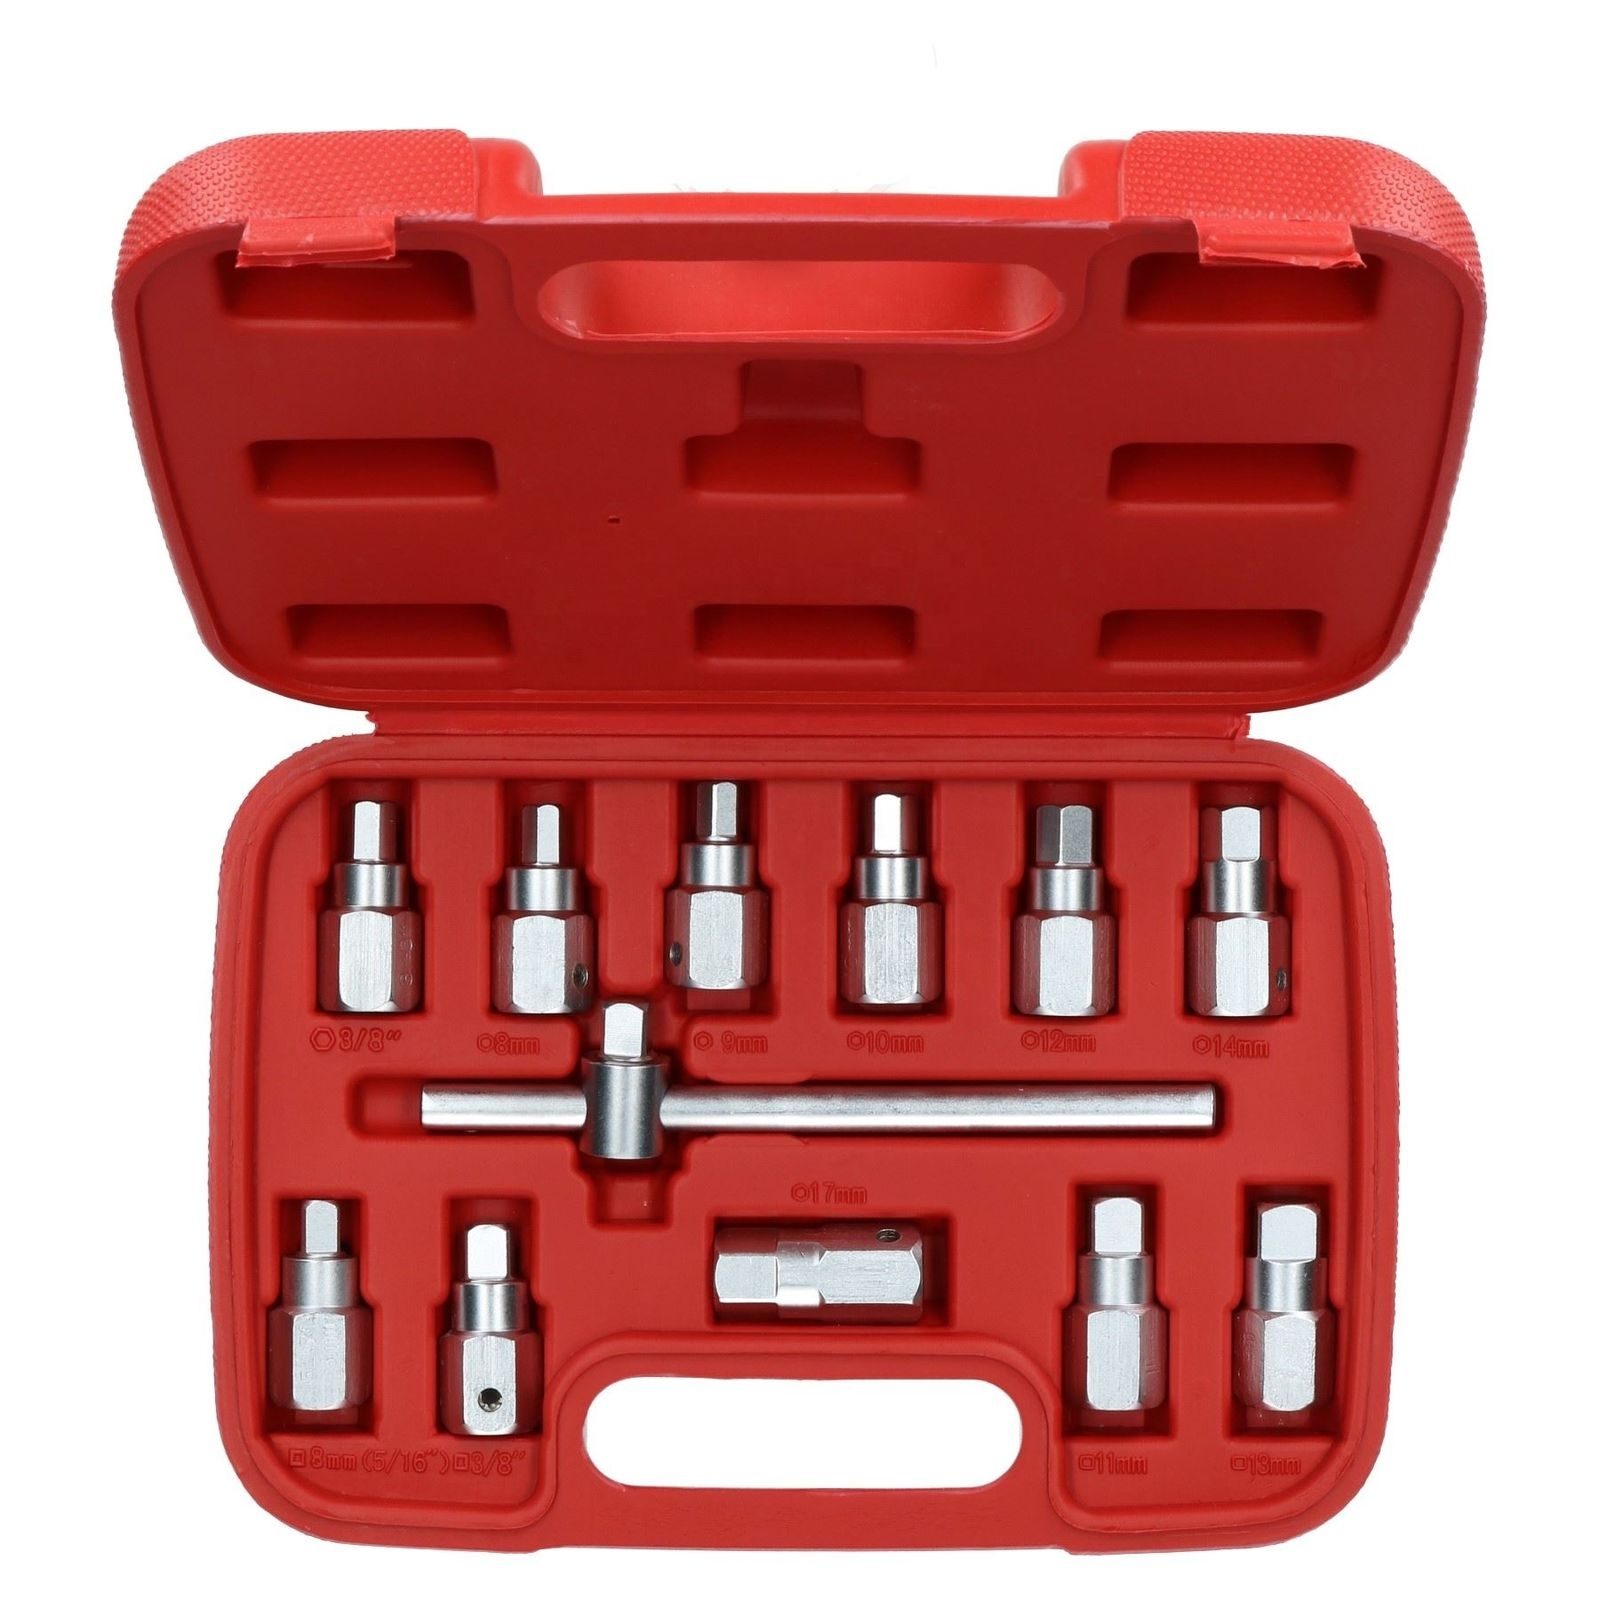 Drain <strong>Plug</strong> <strong>Sump</strong> Key Set Gearbox Axle Repair Oil Change Kit 12pcs Set